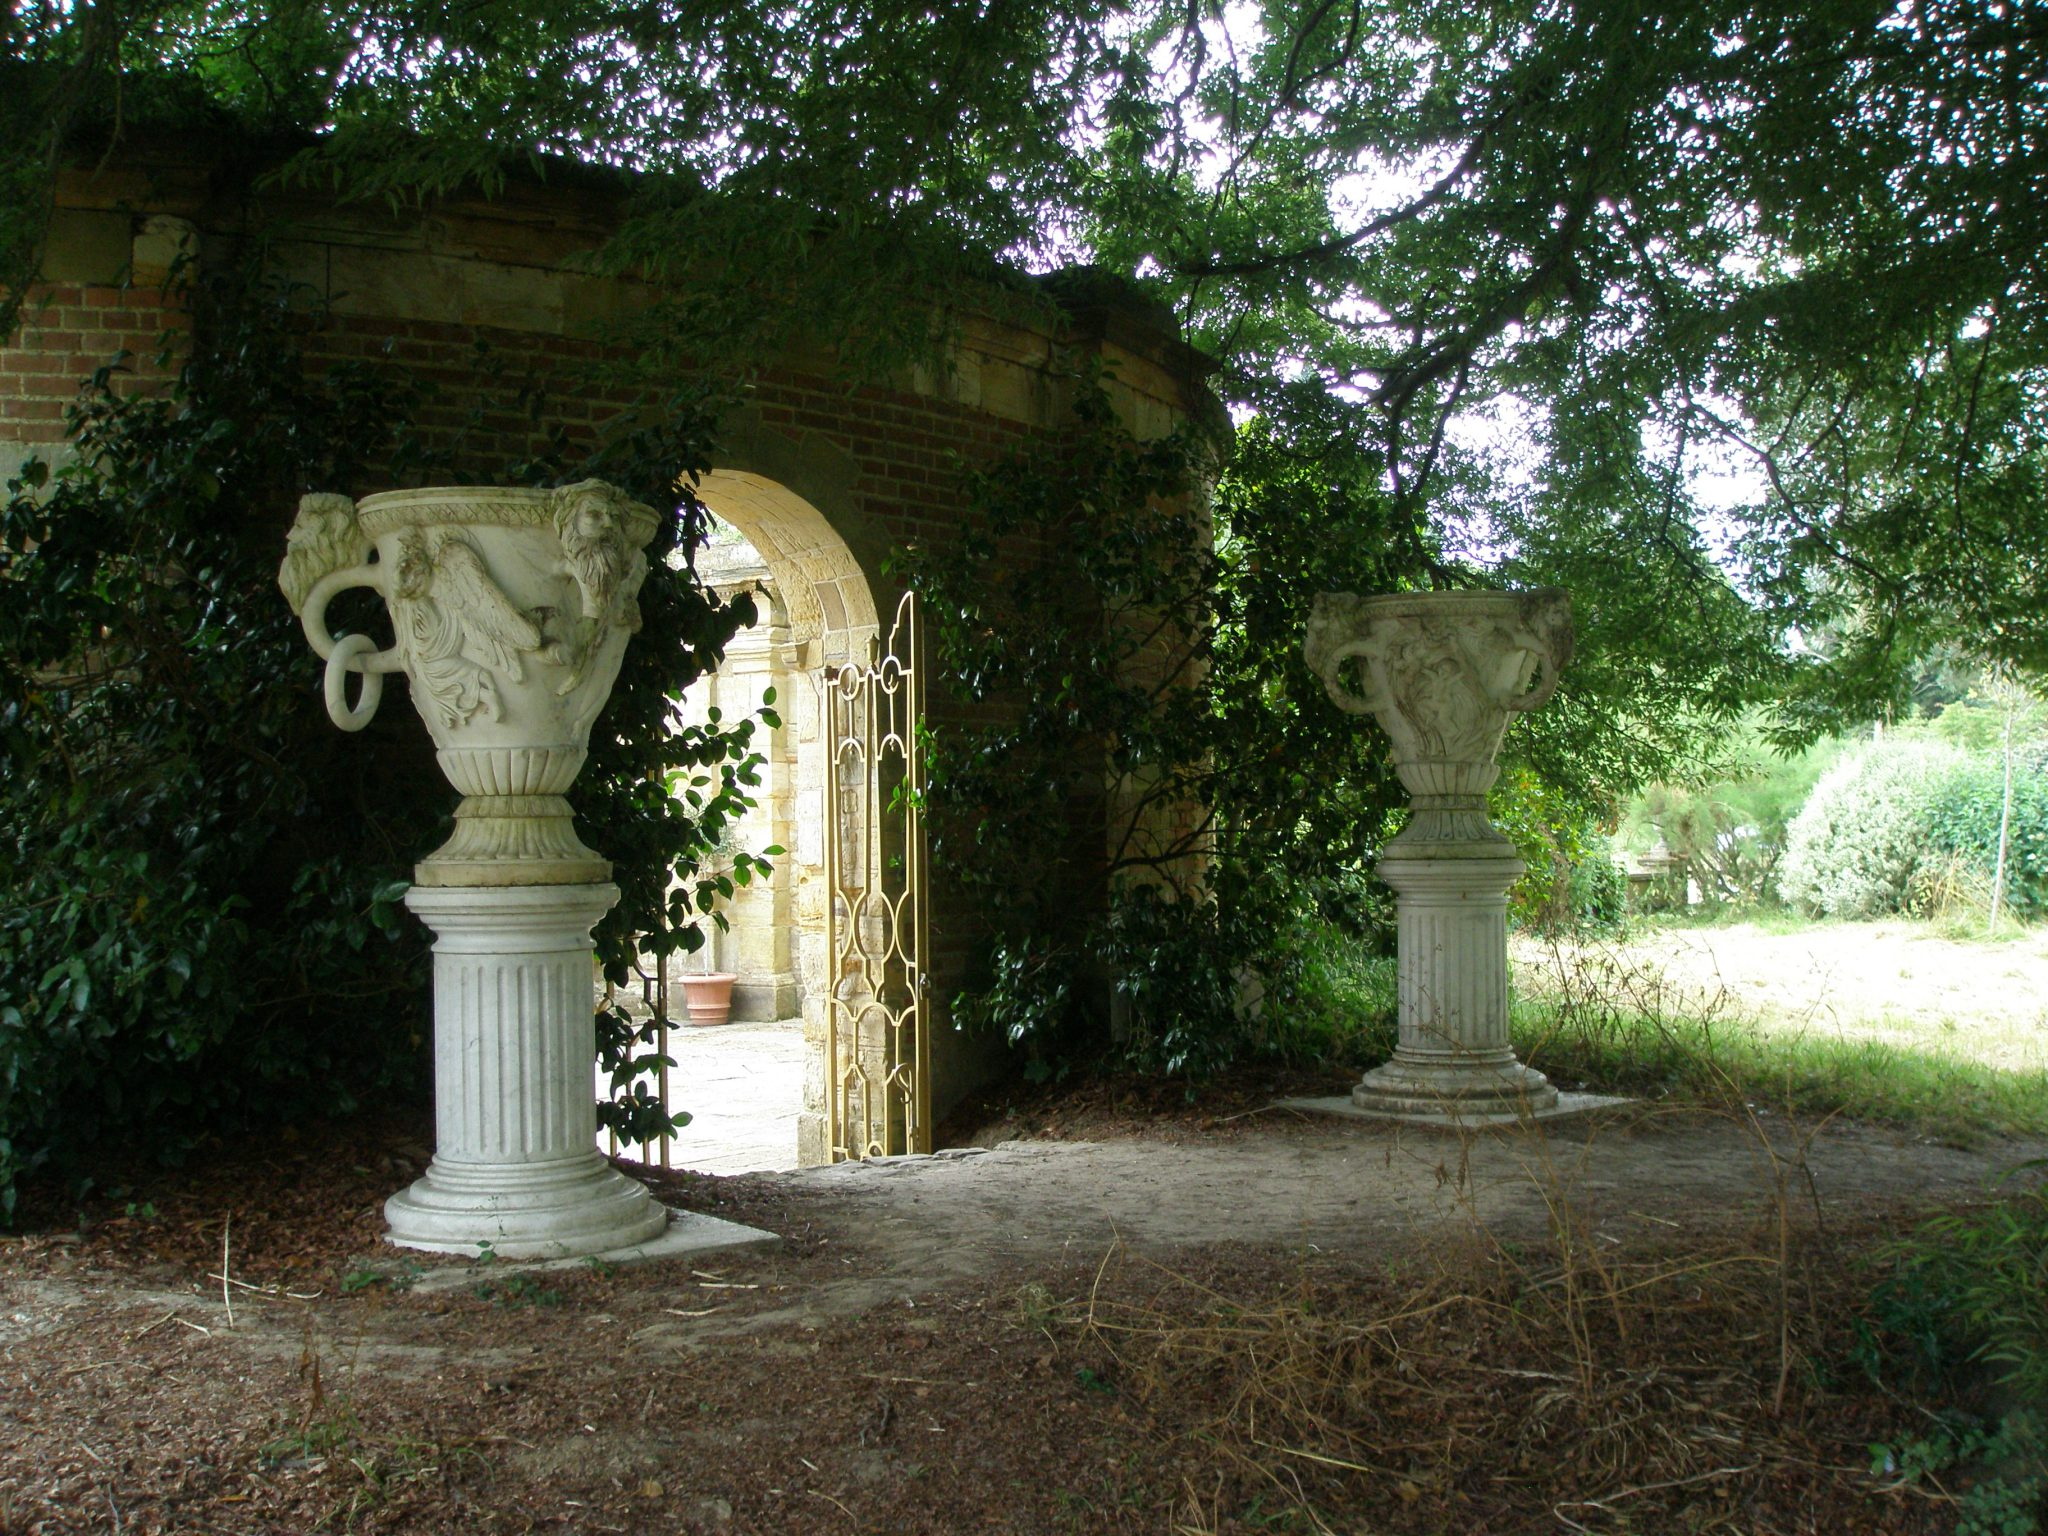 From the round terrace, one can exit the Italian Garden, for a view of the Sixteen Acre Island